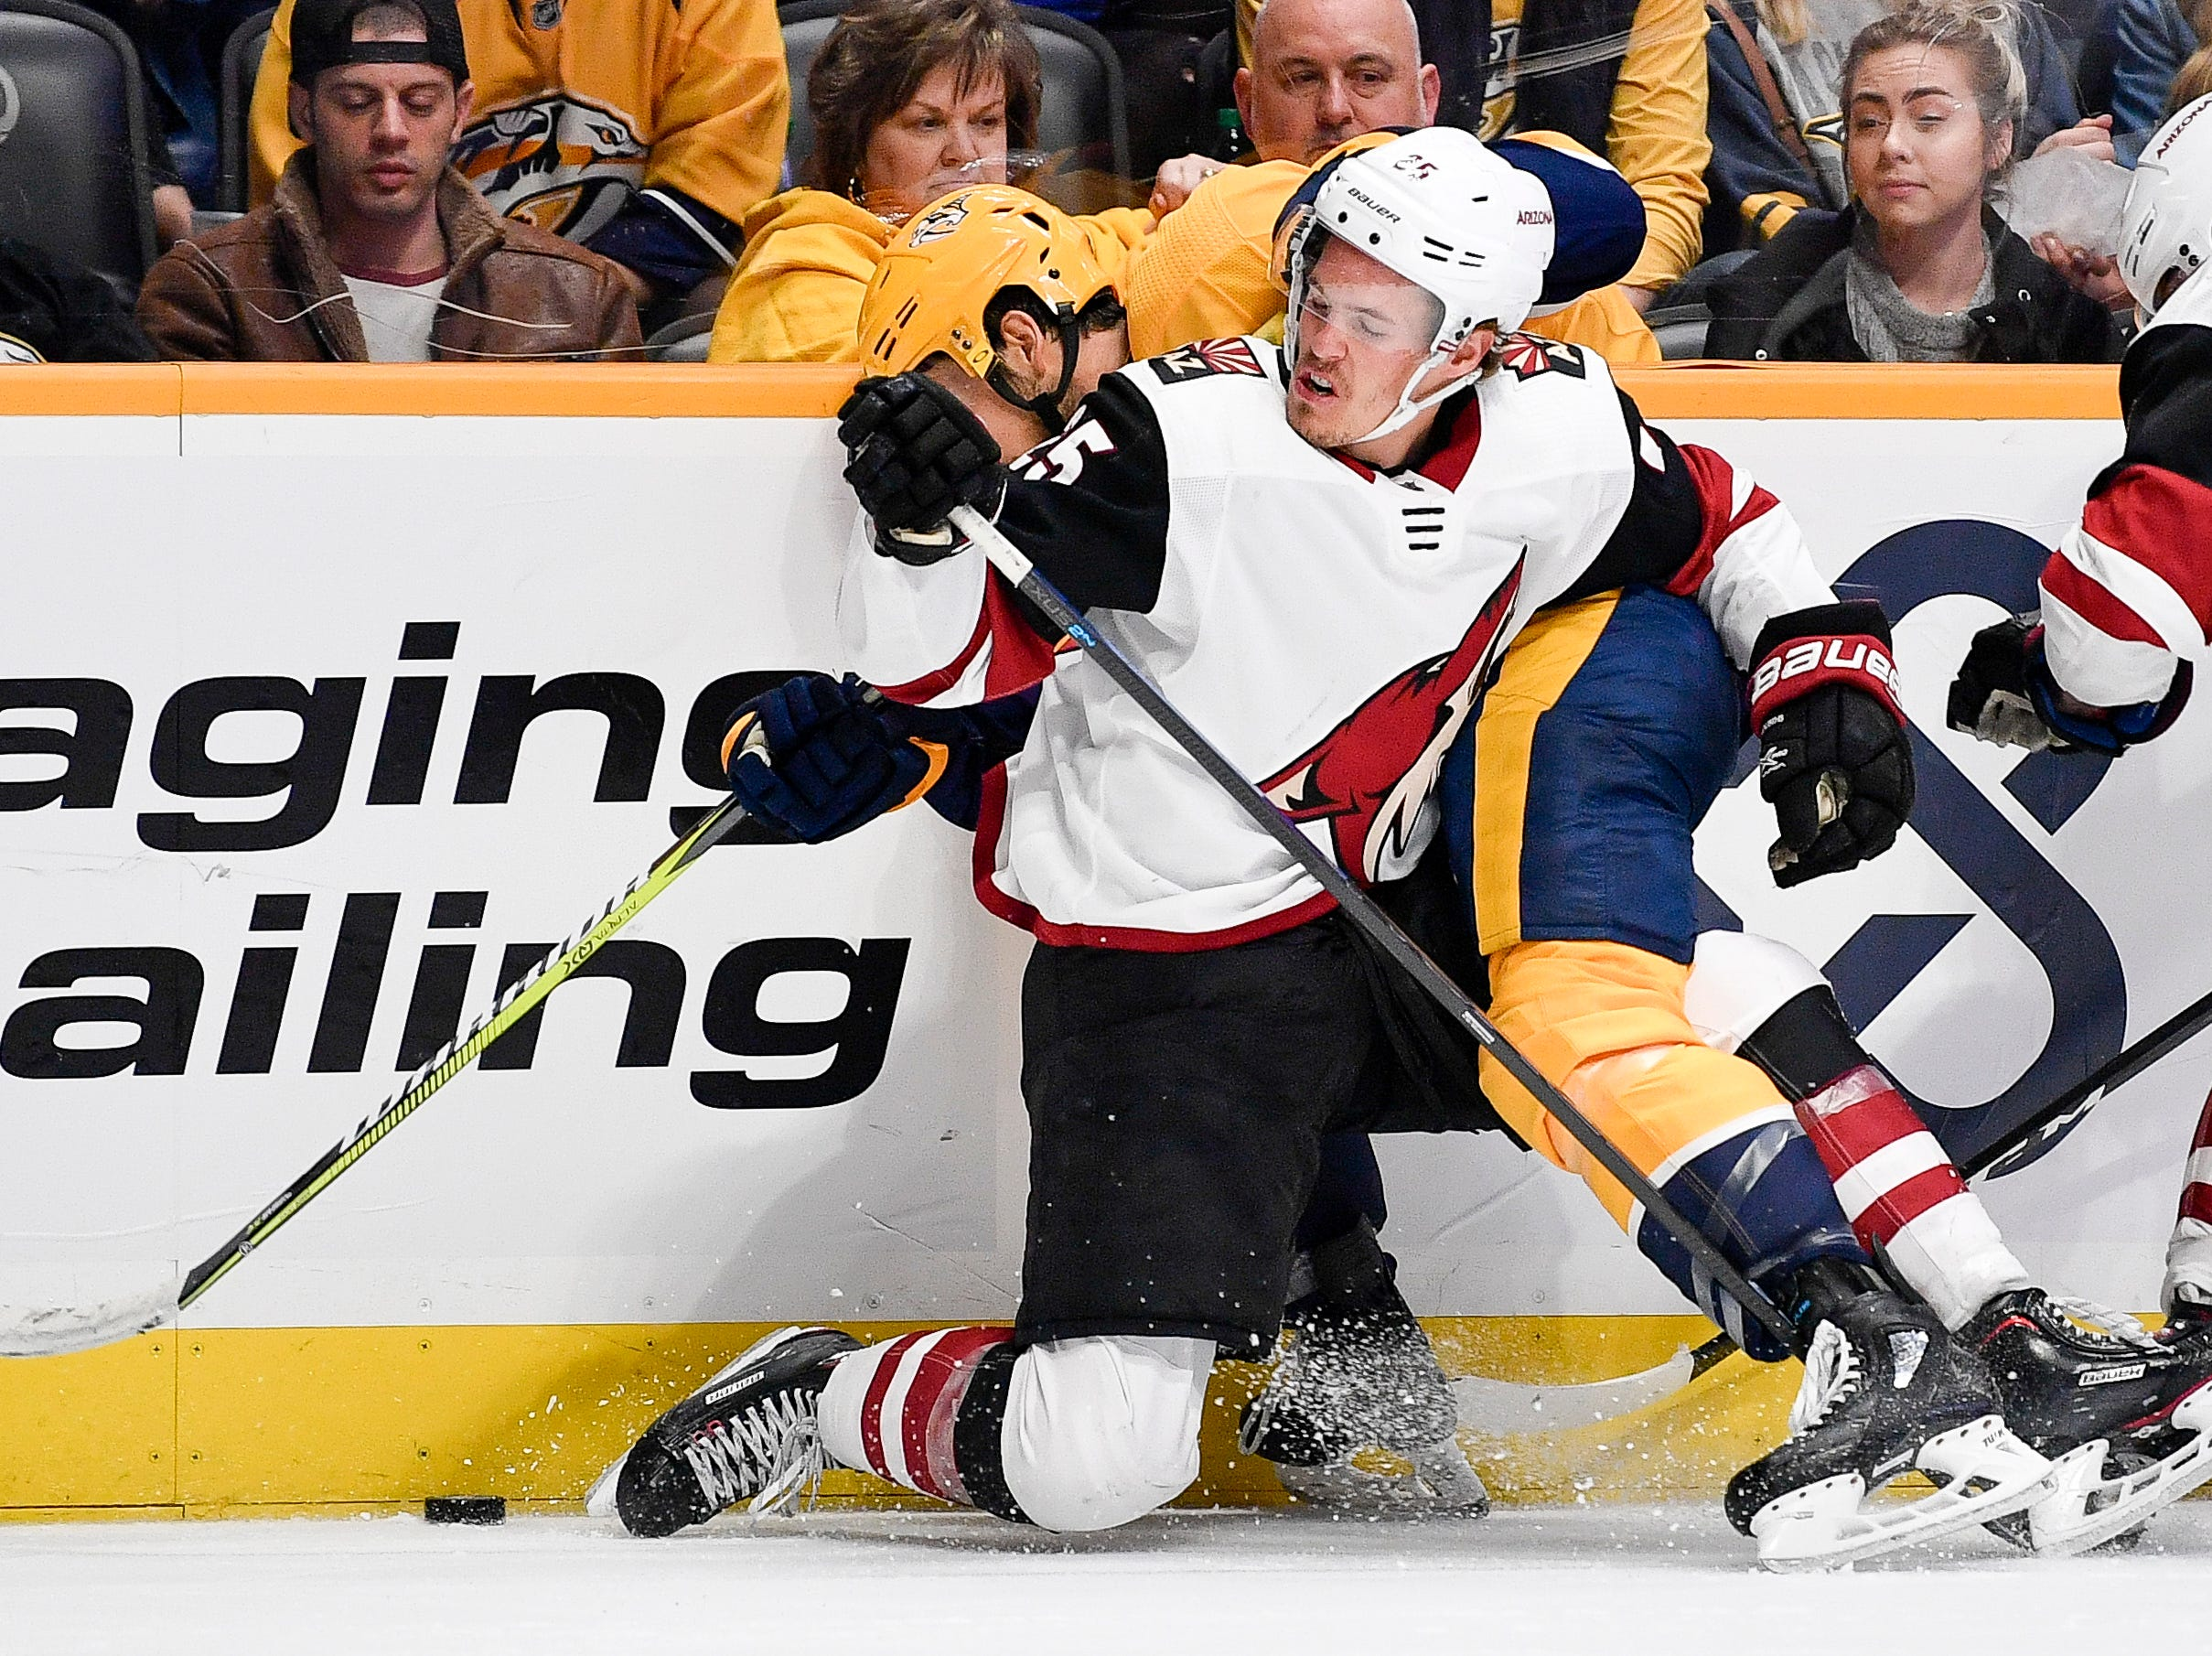 Arizona Coyotes center Nick Cousins (25) battles Nashville Predators center Frederick Gaudreau (89) during the third period at Bridgestone Arena in Nashville, Tenn., Tuesday, Feb. 5, 2019.